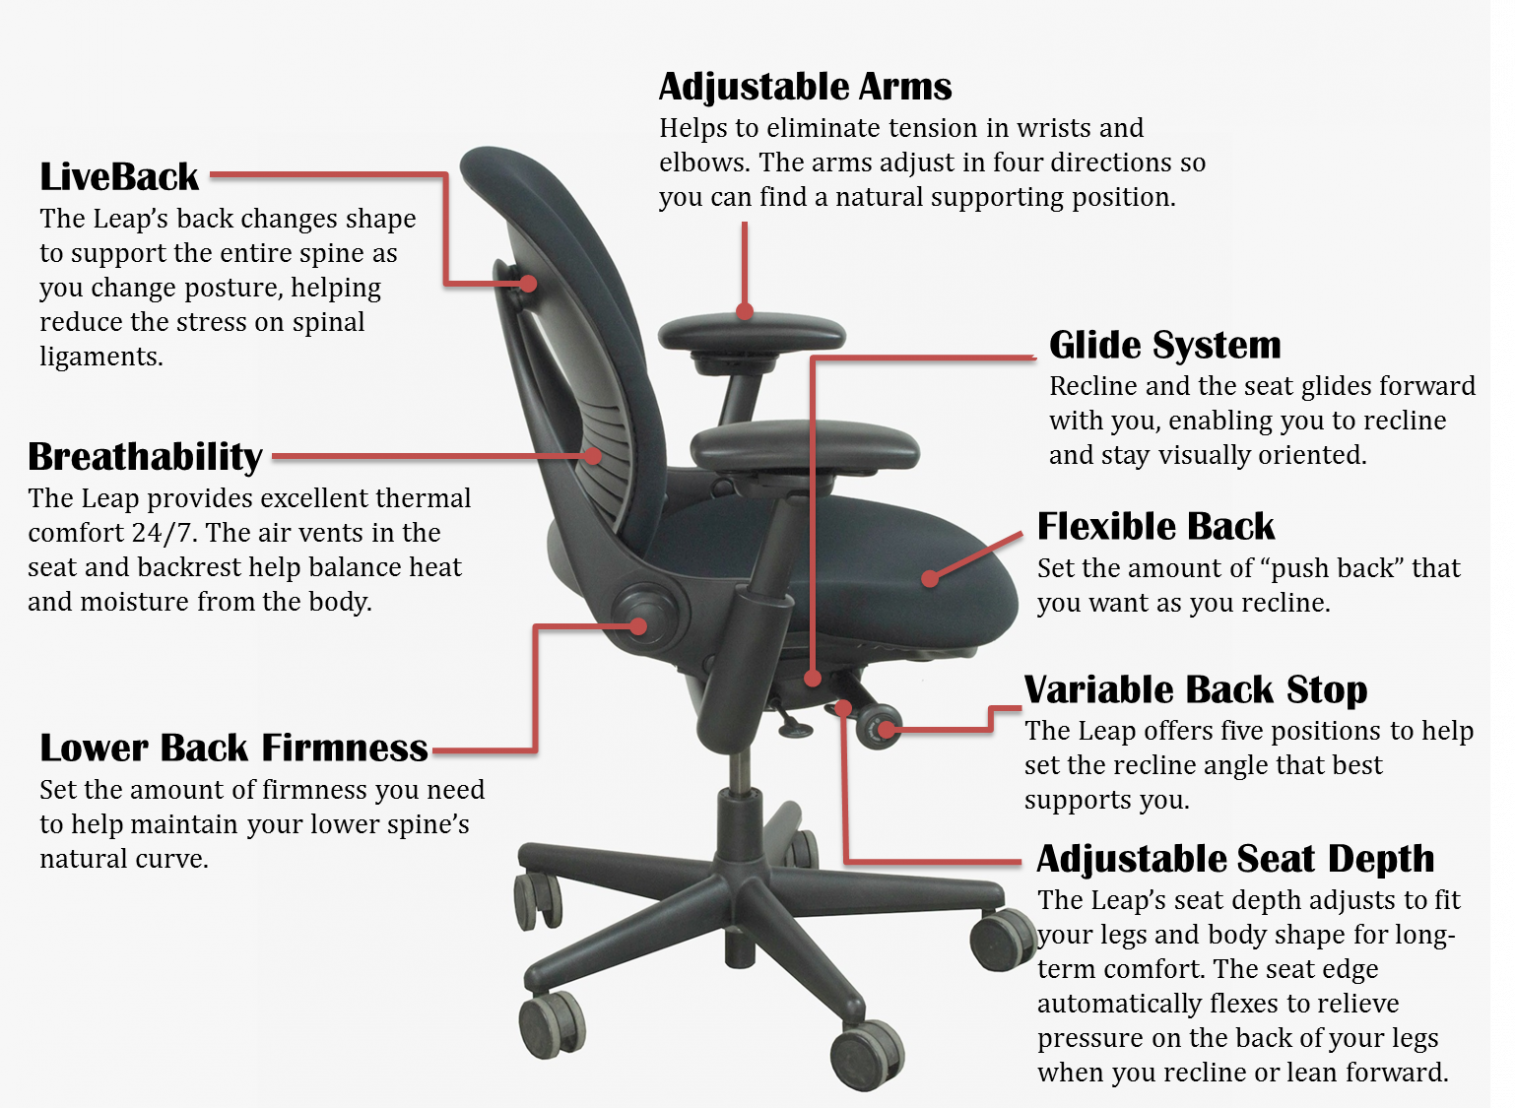 Lane Office Chair Parts Ashley Furniture Home Office Check More At Http Www Drjamesghoodblog Com Lane Office Chair Parts